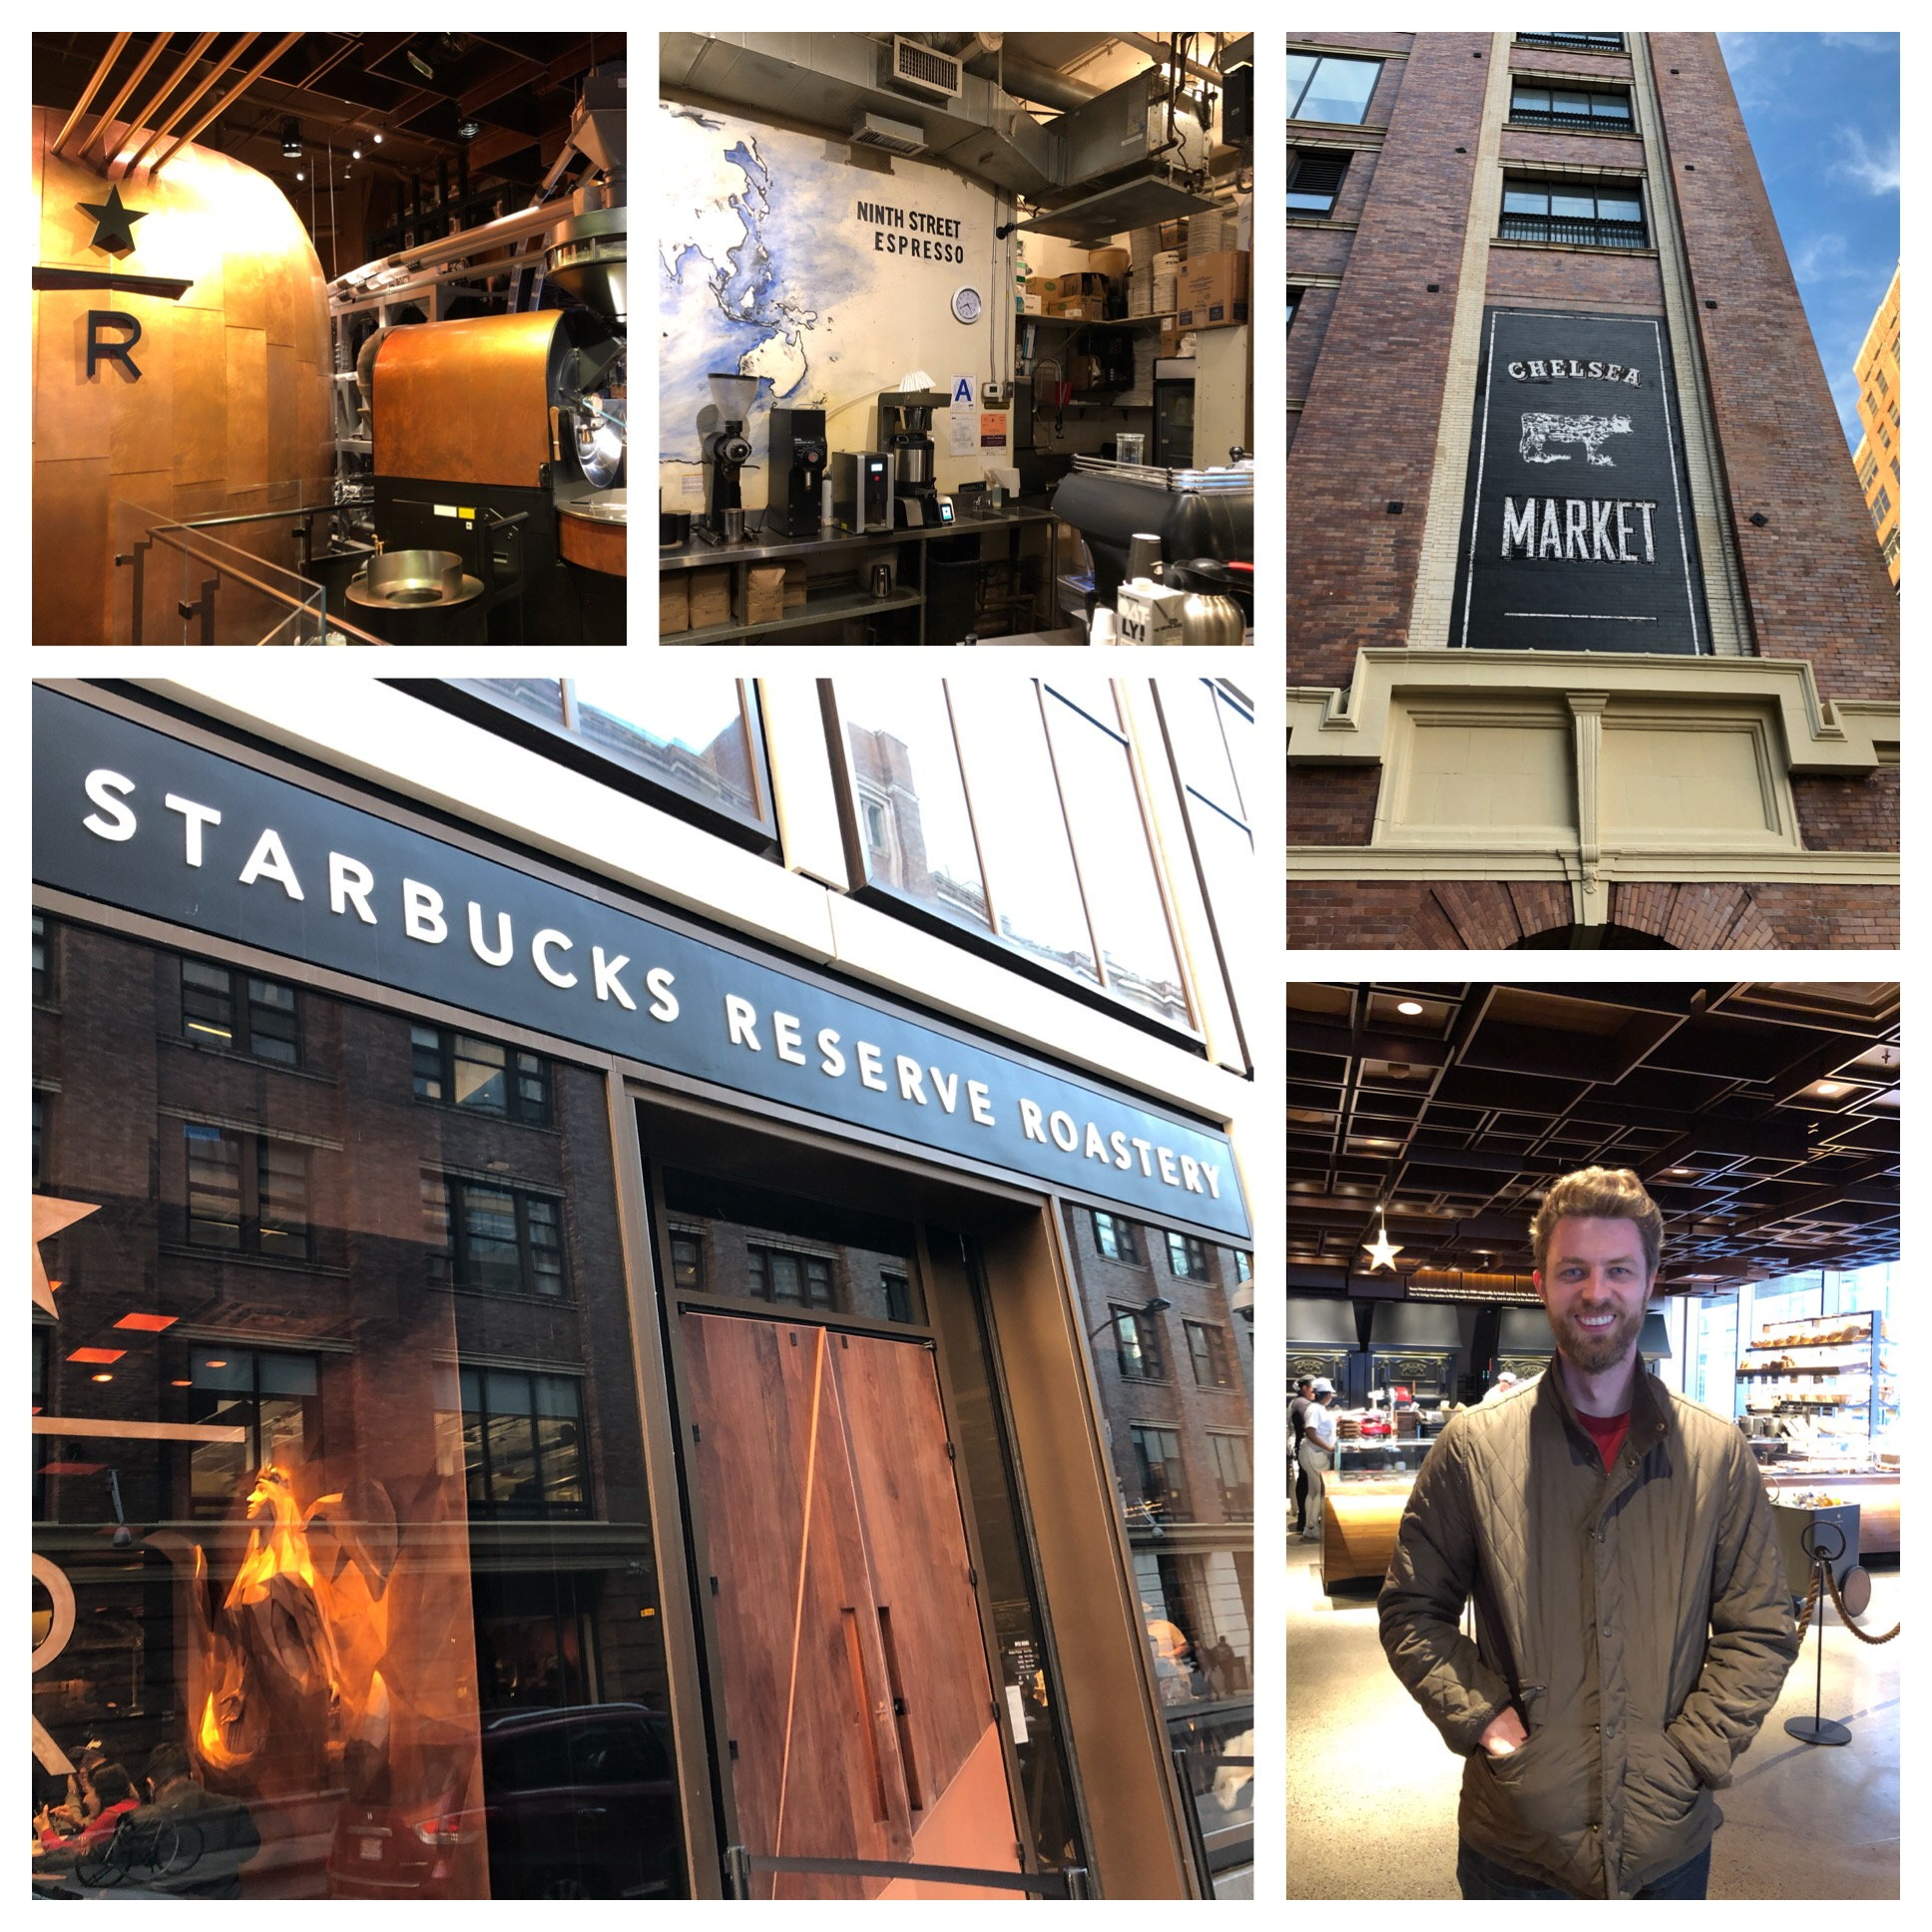 That's Tom inside Starbucks Reserve. We opted for coffee at the Chelsea Market from the Ninth St Espresso.